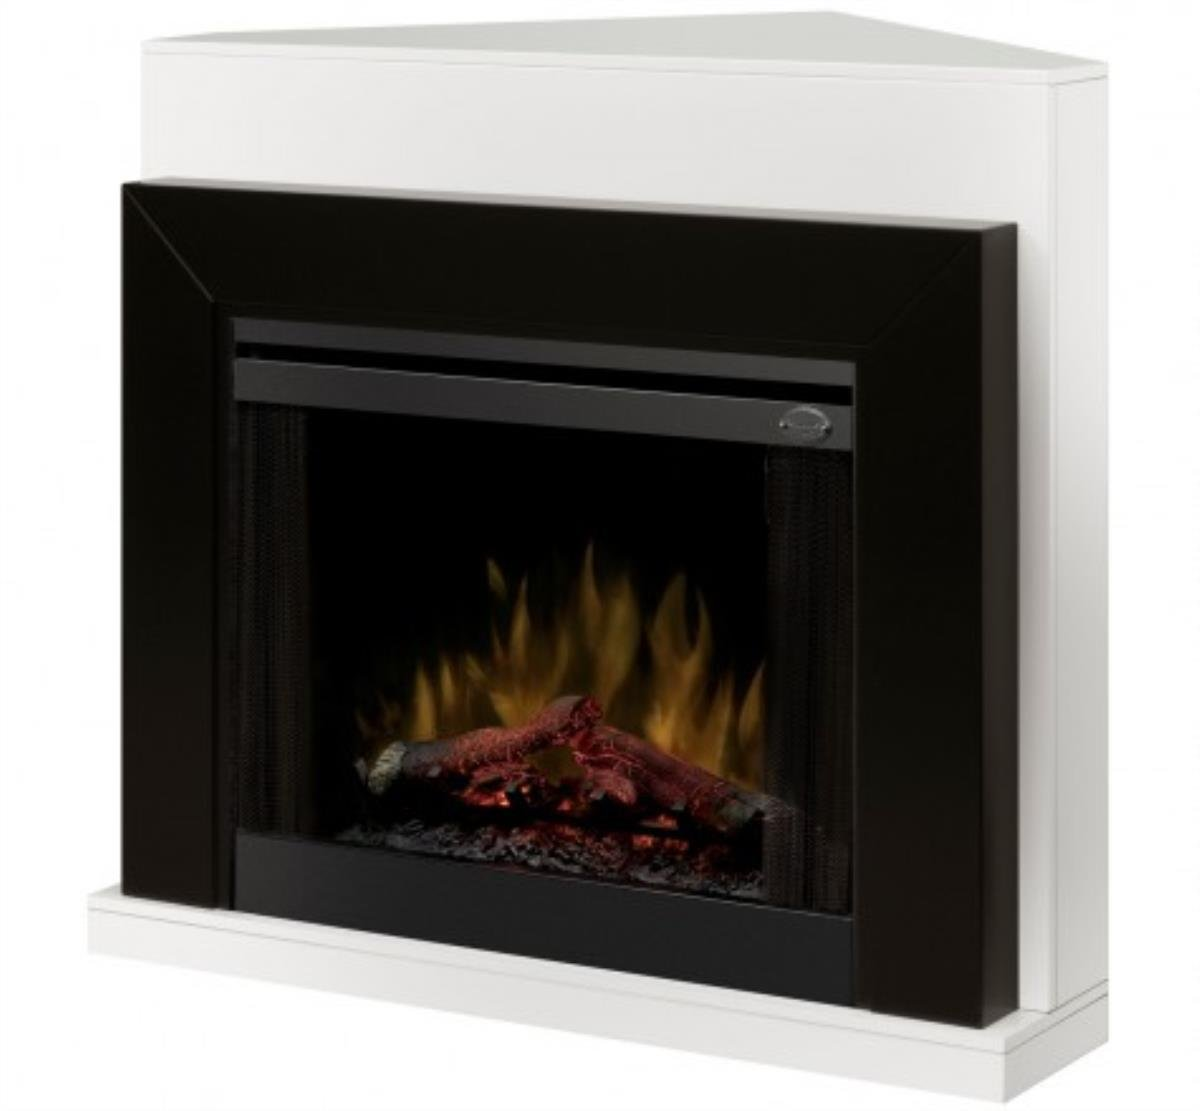 Amazon.com: Dimplex Ebony Covertable Corner Electric Fireplace Black/White: Home & Kitchen